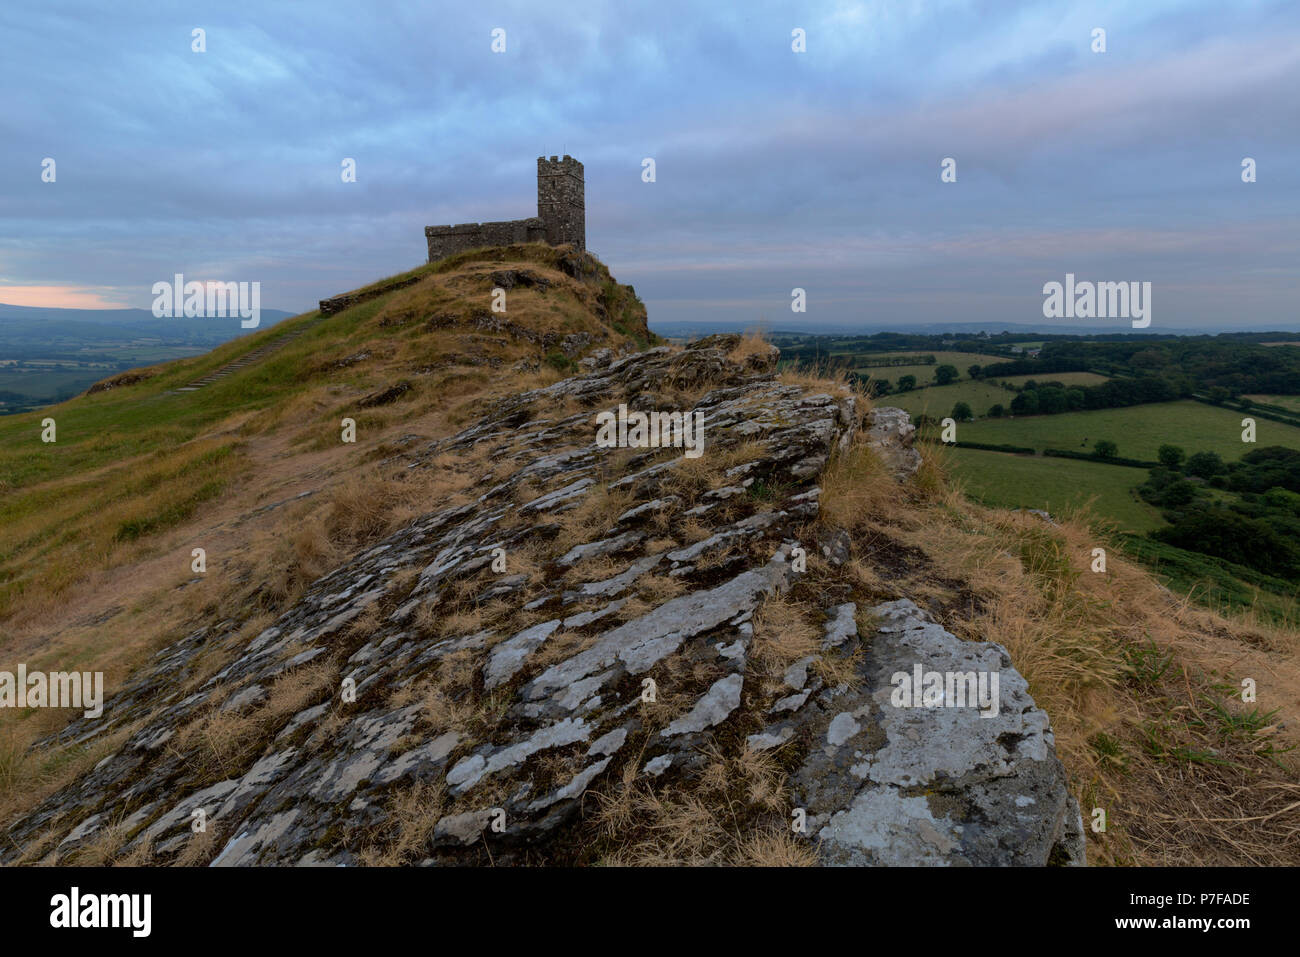 The parish church of St Michael De Rupe at Brentor in West Devon - Stock Image